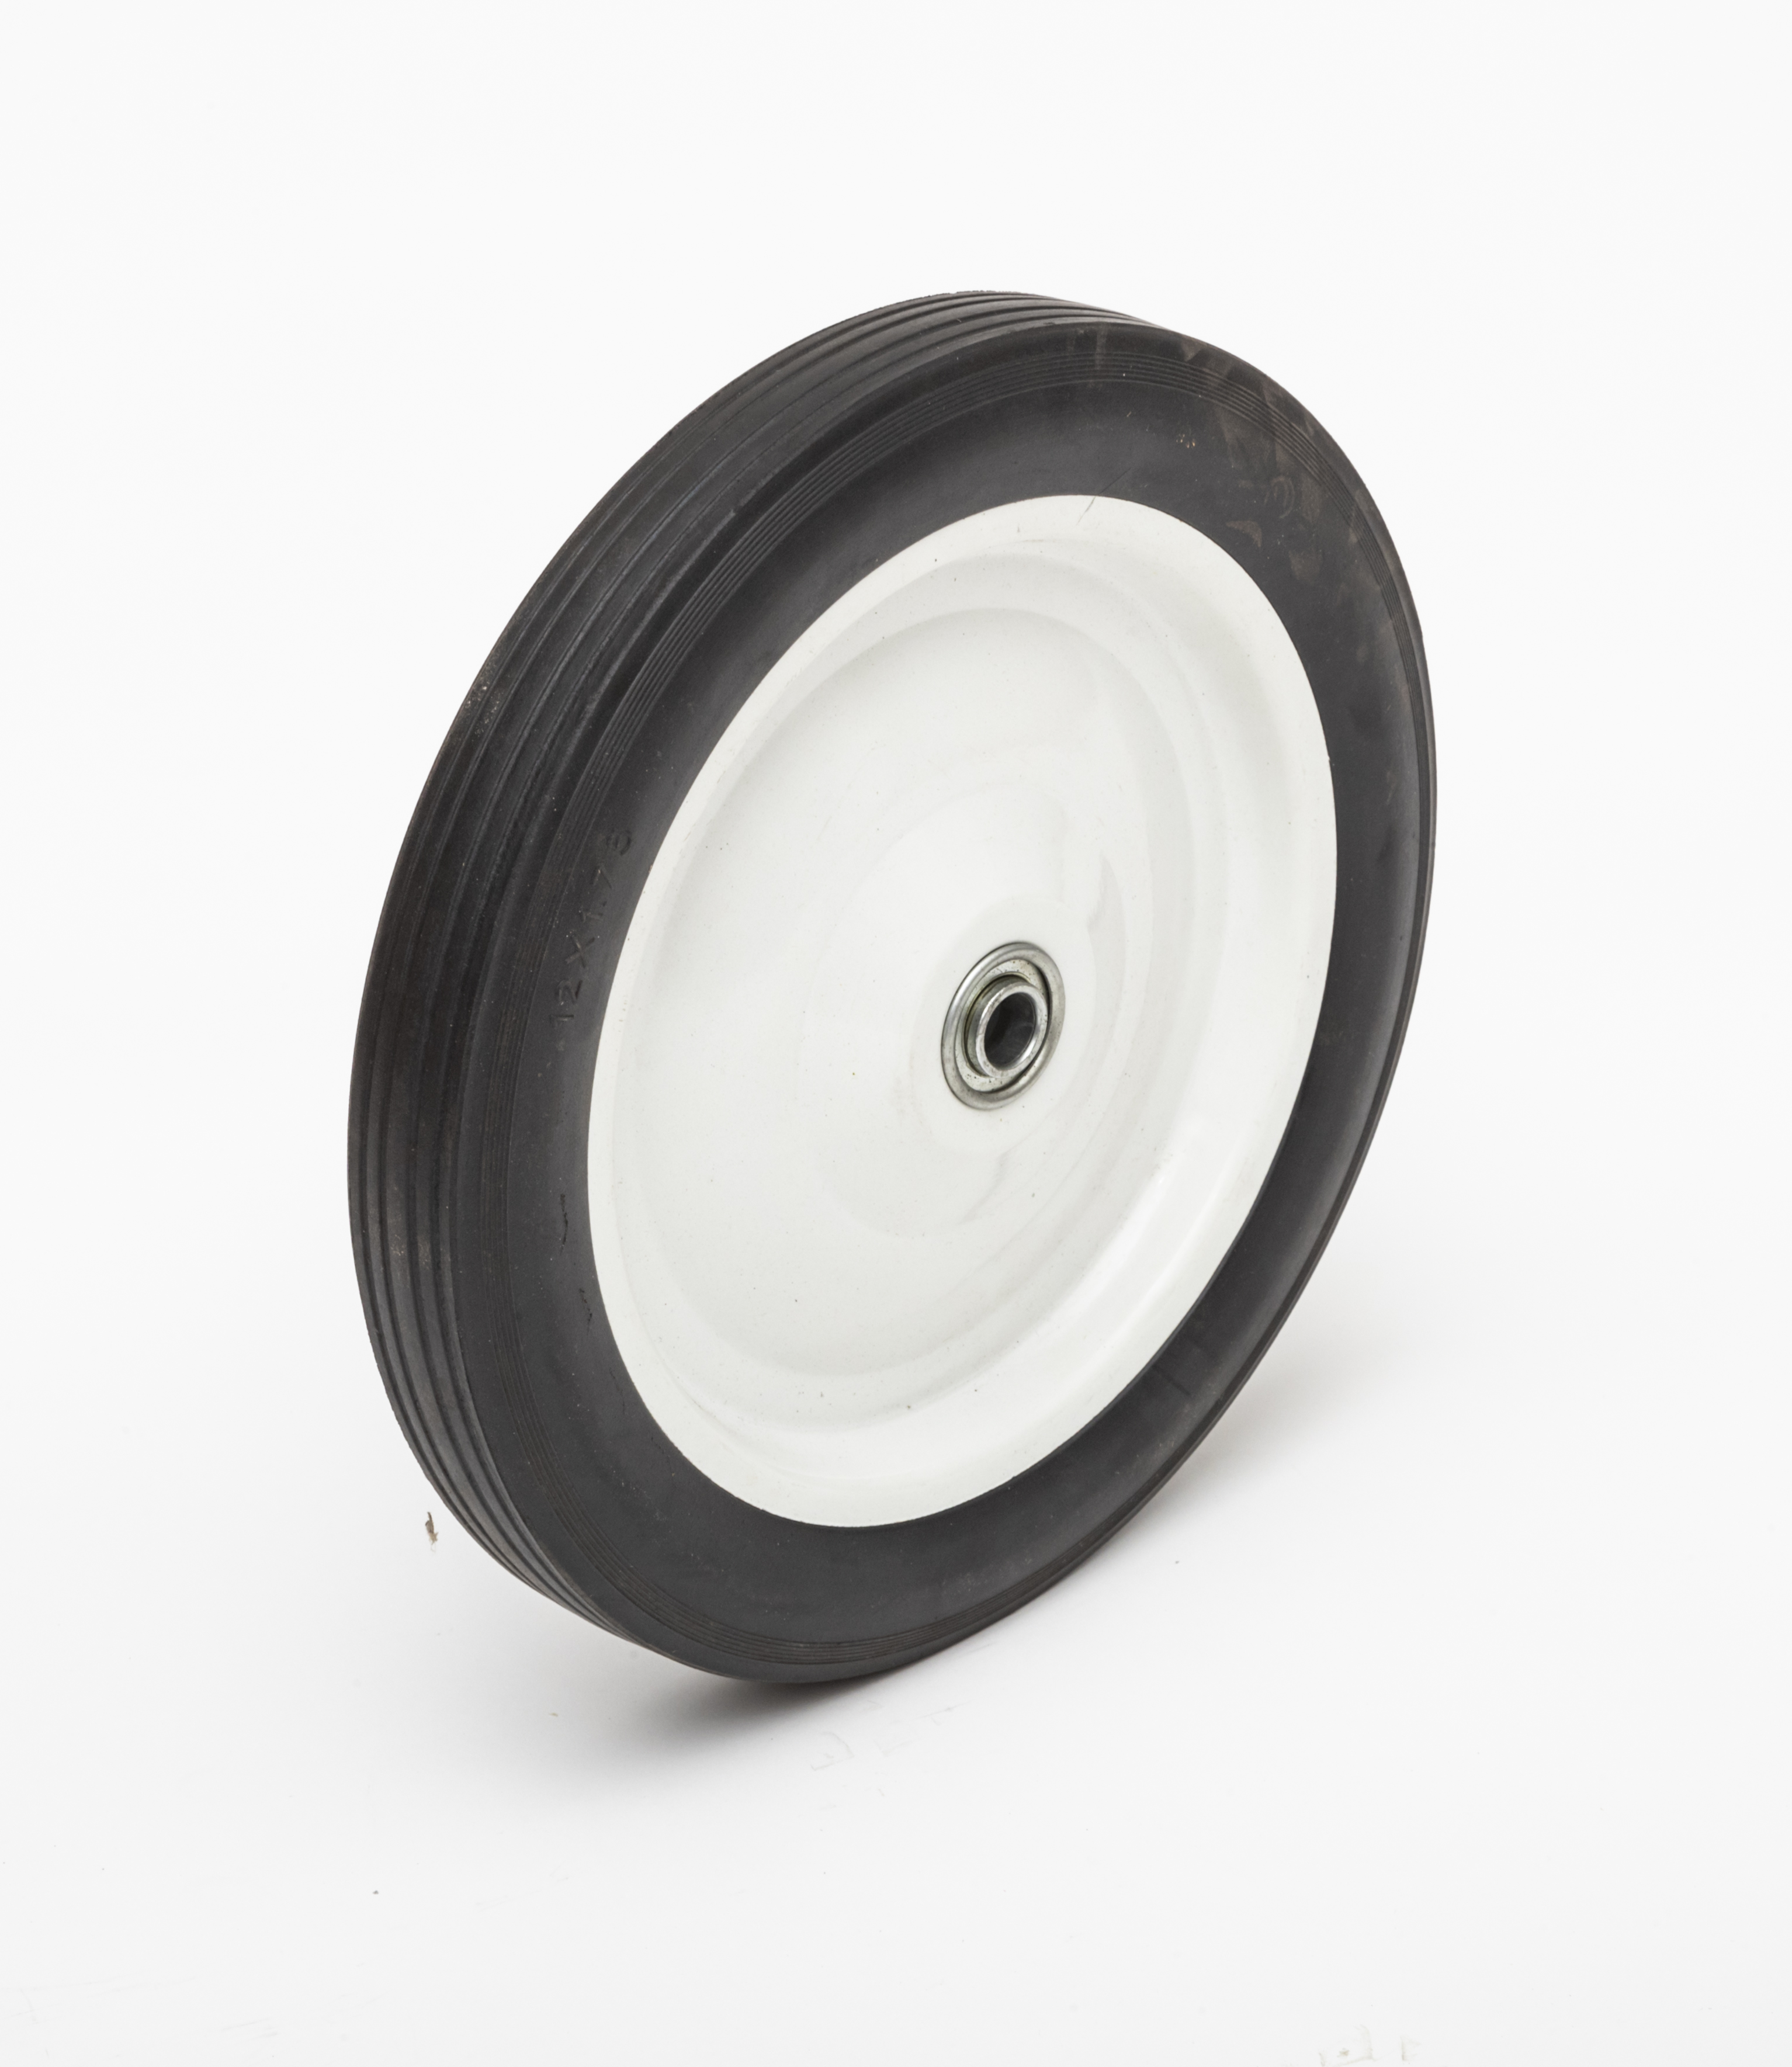 d38756af7538 12 inch Hard Rubber, Flat free, Wheel for Pressure Washer, Air Compressor,  Hand Truck Replacement, Wheel/Hub Size Options